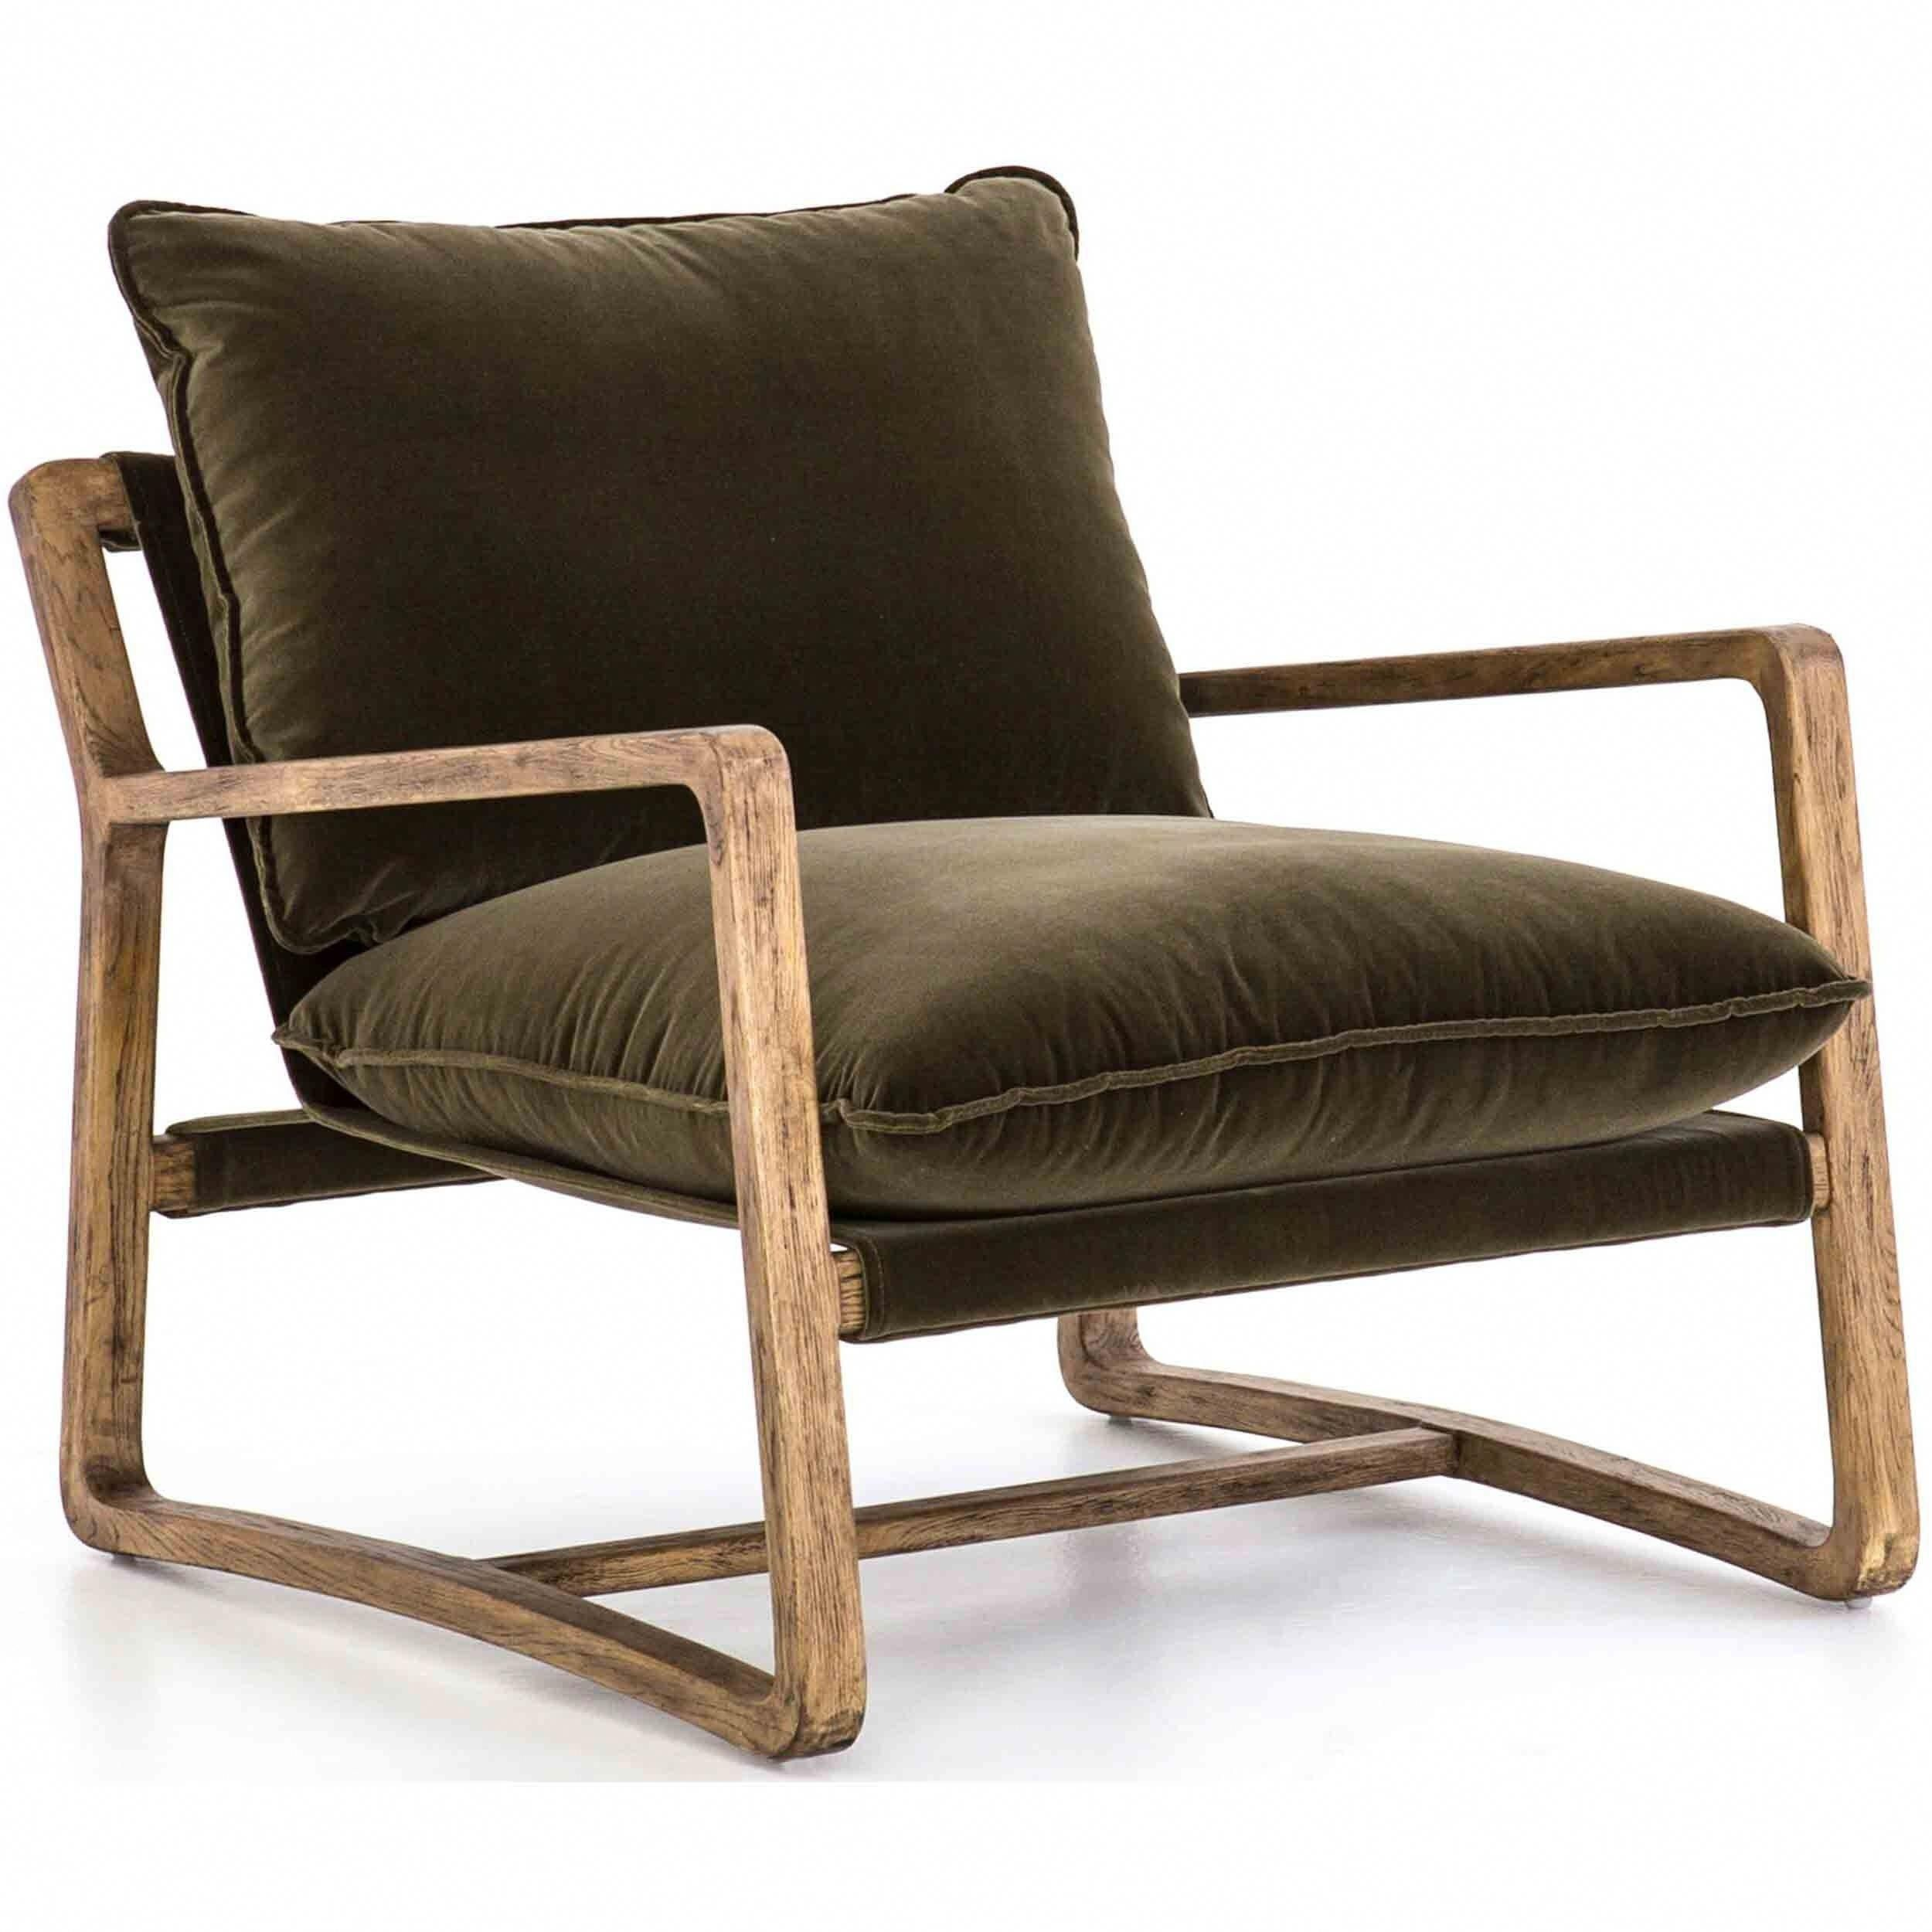 Brown leather recliner chair frenchprovincialchair